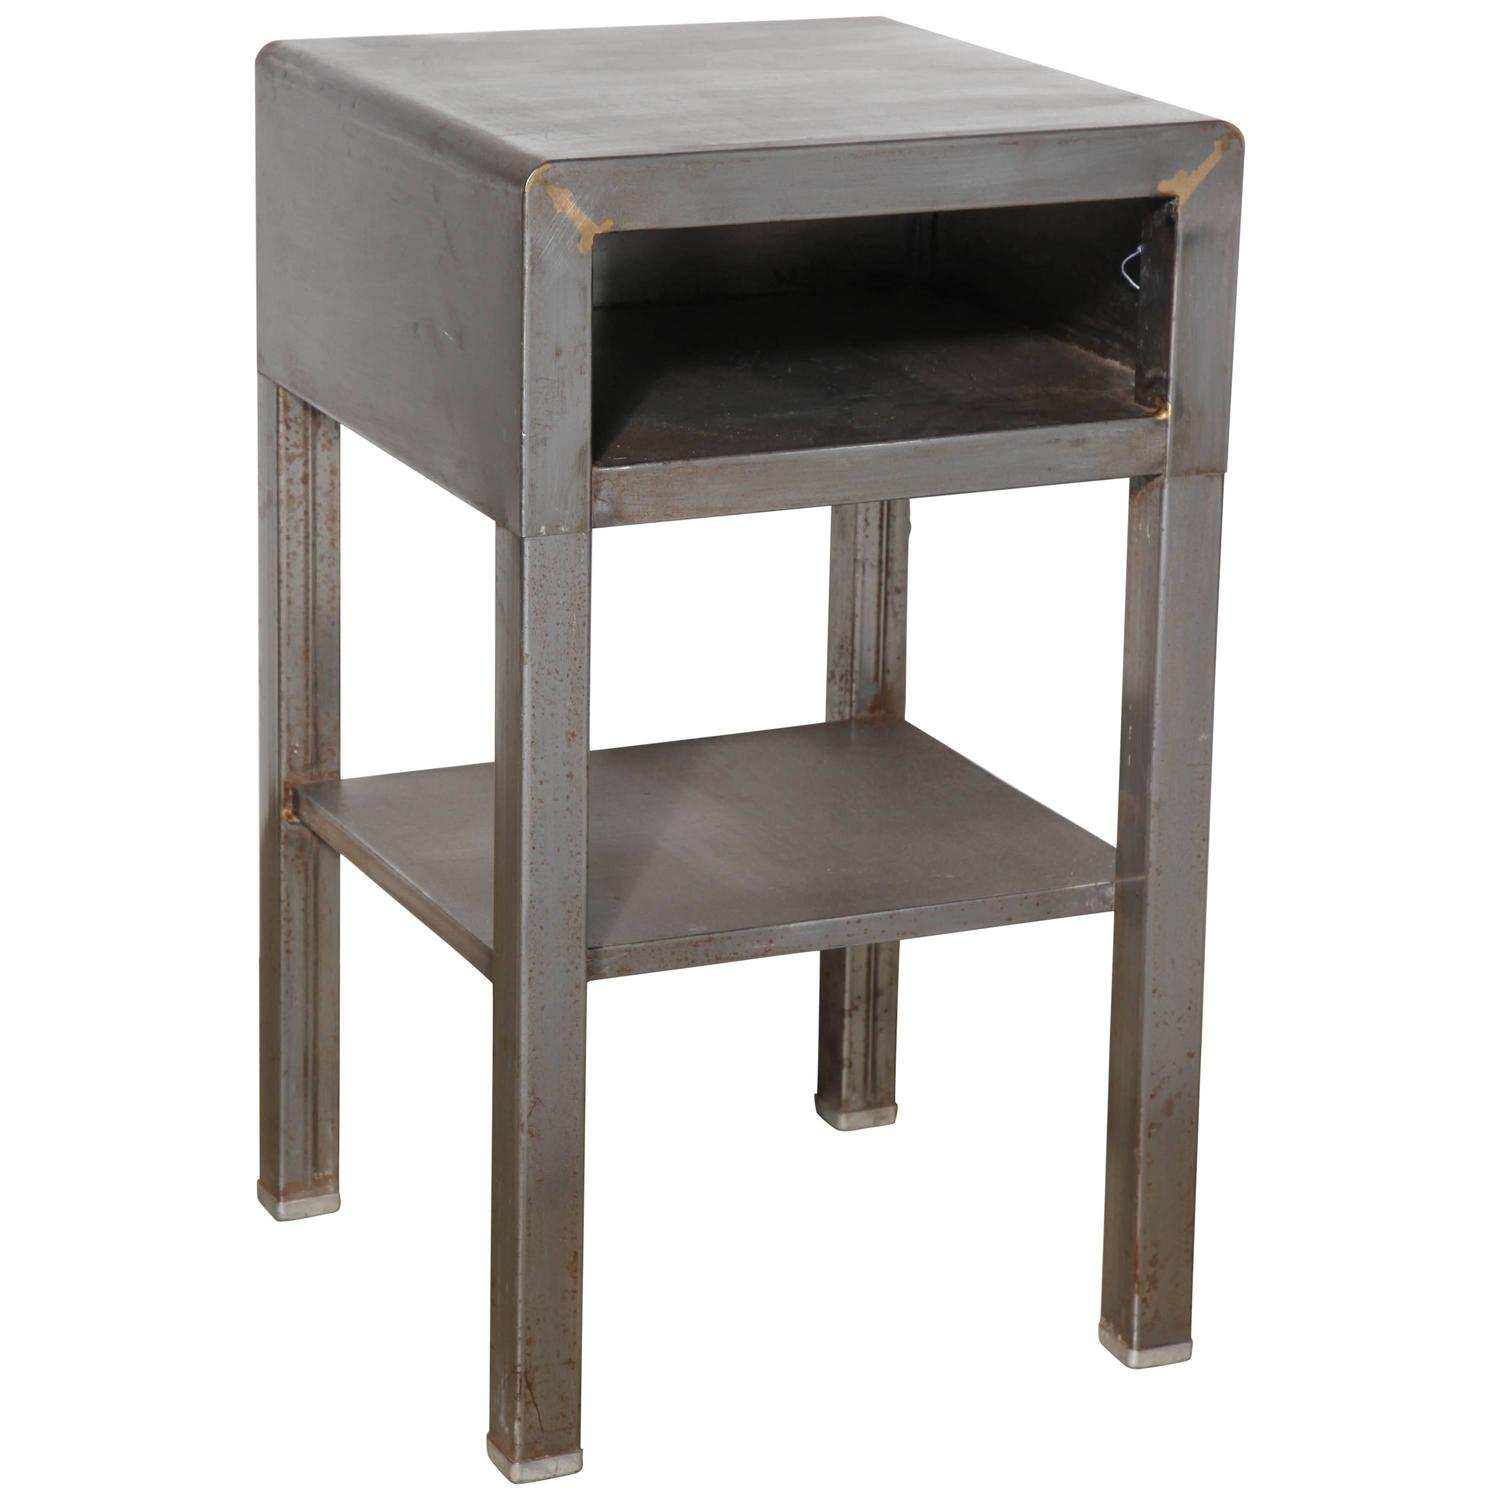 simmons modern furniture metal side table 2. 1930u0027s industrial norman bel geddes for simmons single nightstand at 1stdibs modern furniture metal side table 2 o